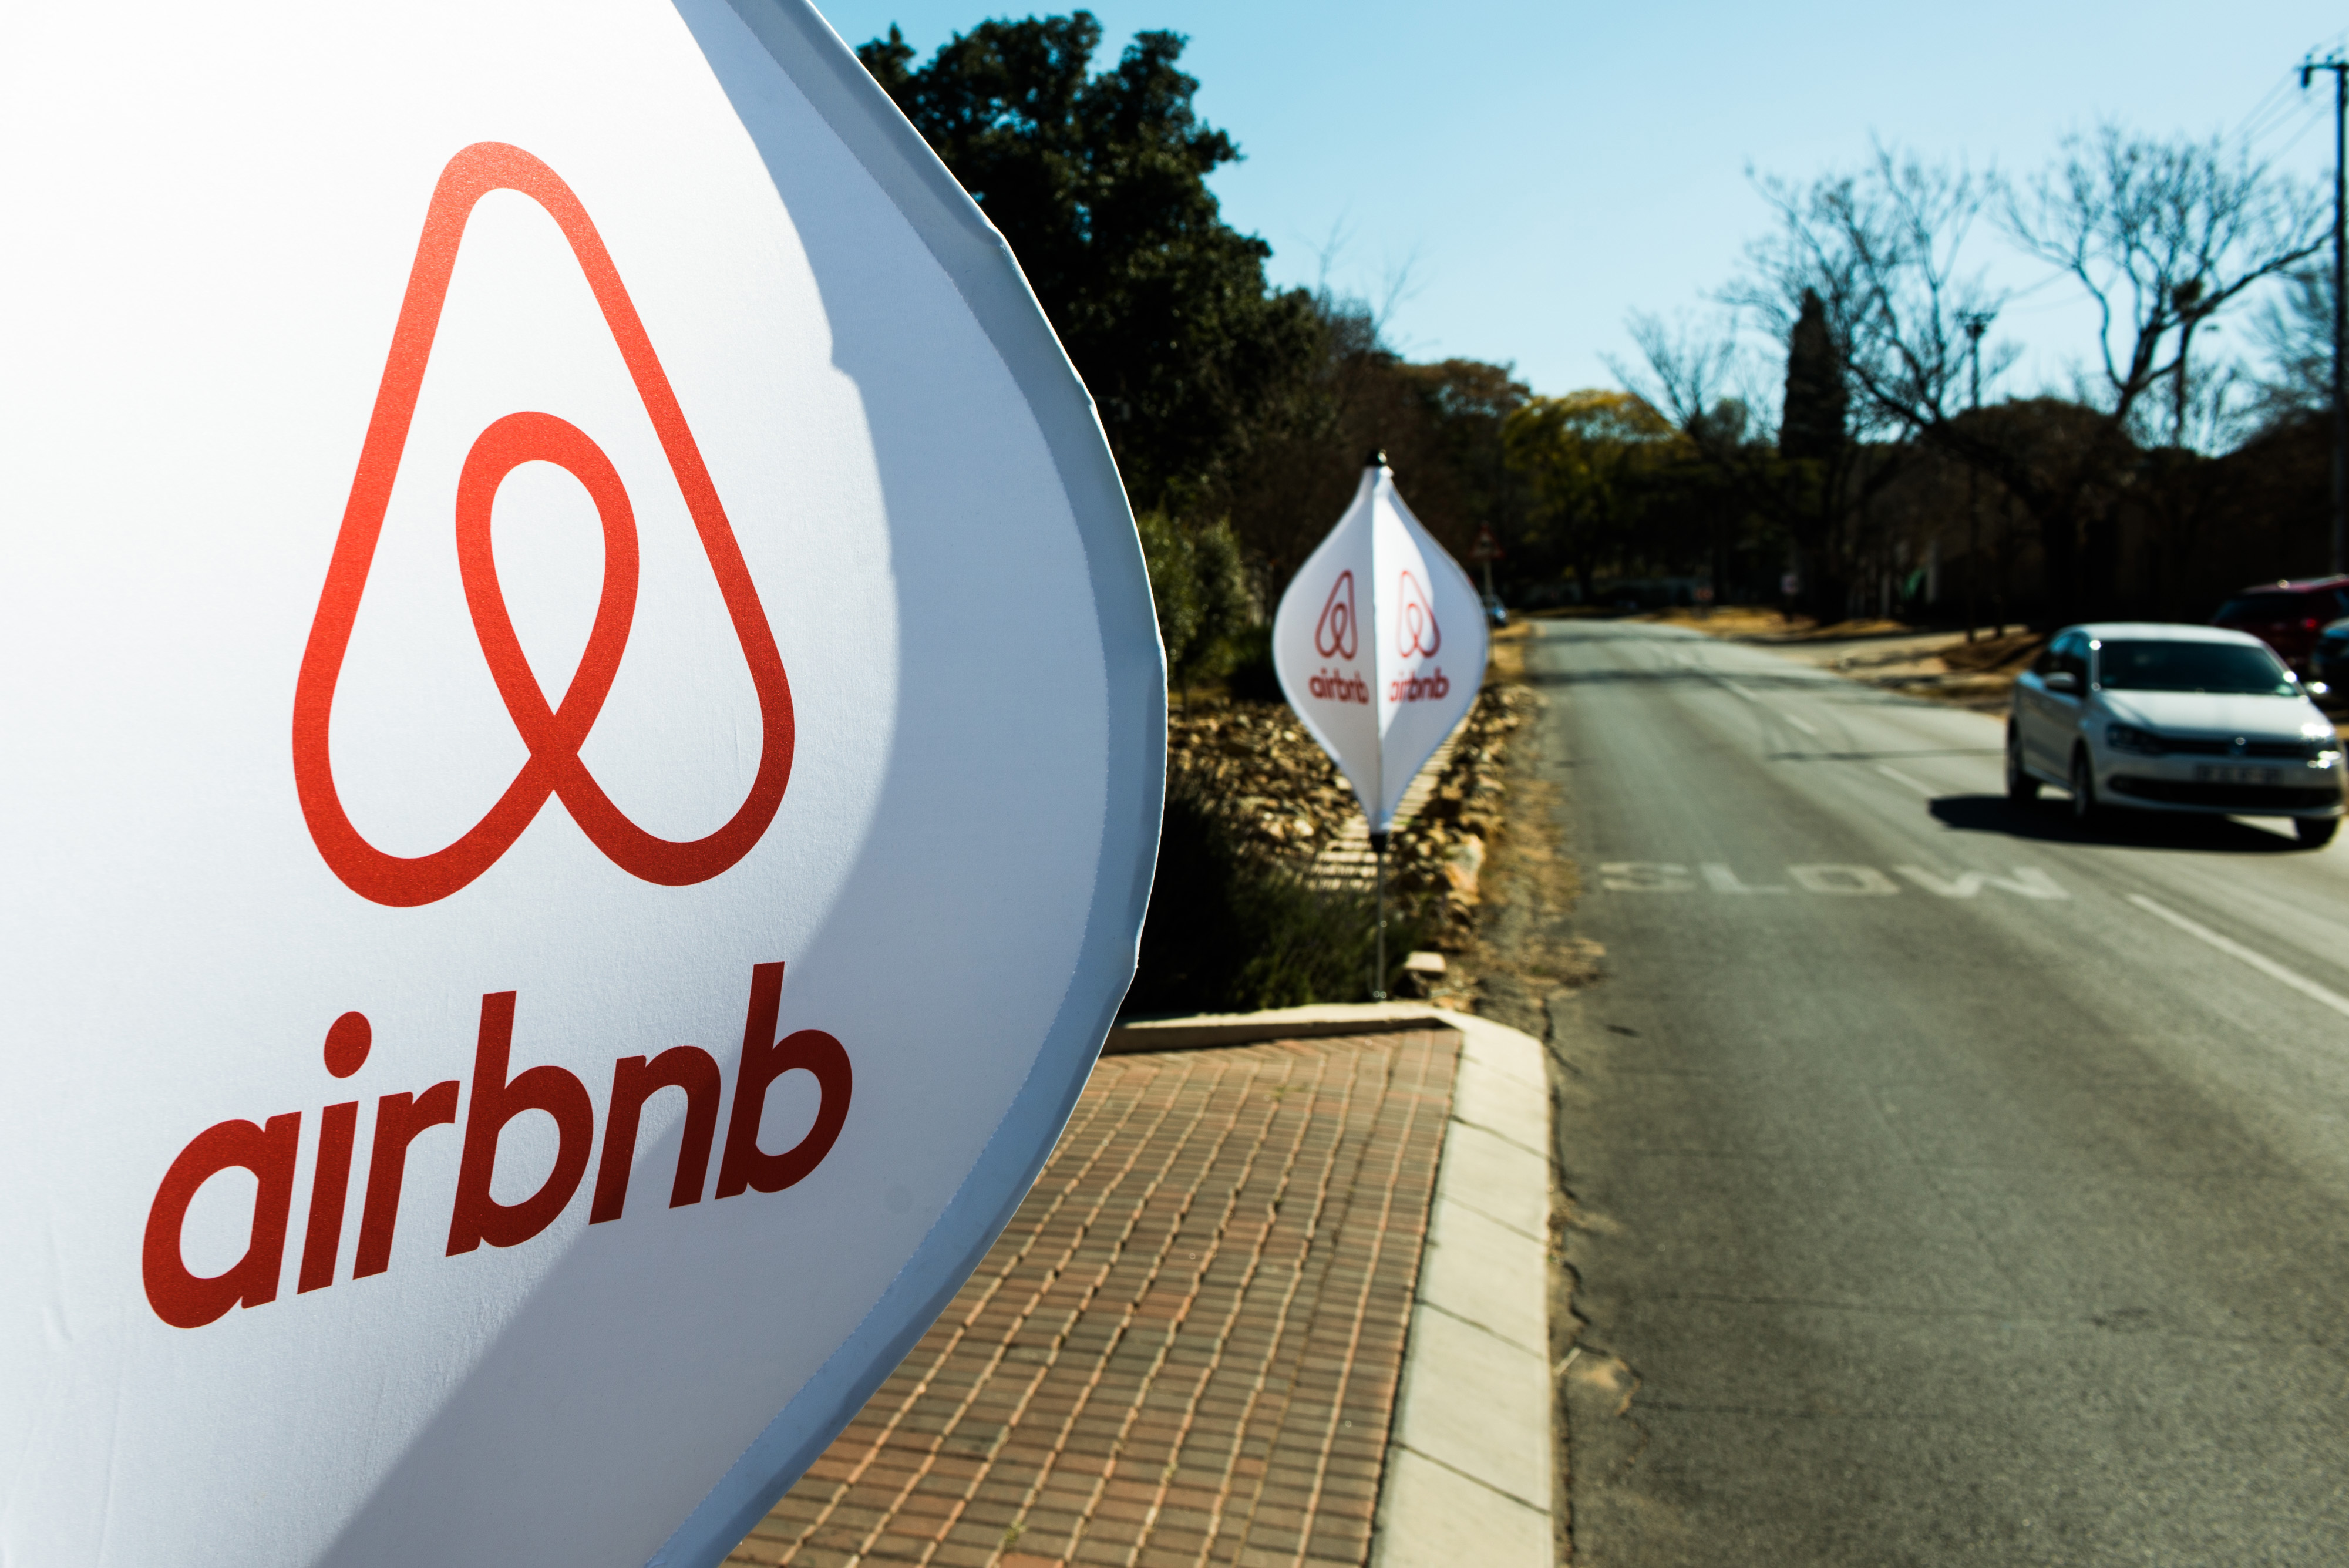 The logos of Airbnb sit on banners displayed outside a media event in Johannesburg on July 27, 2015